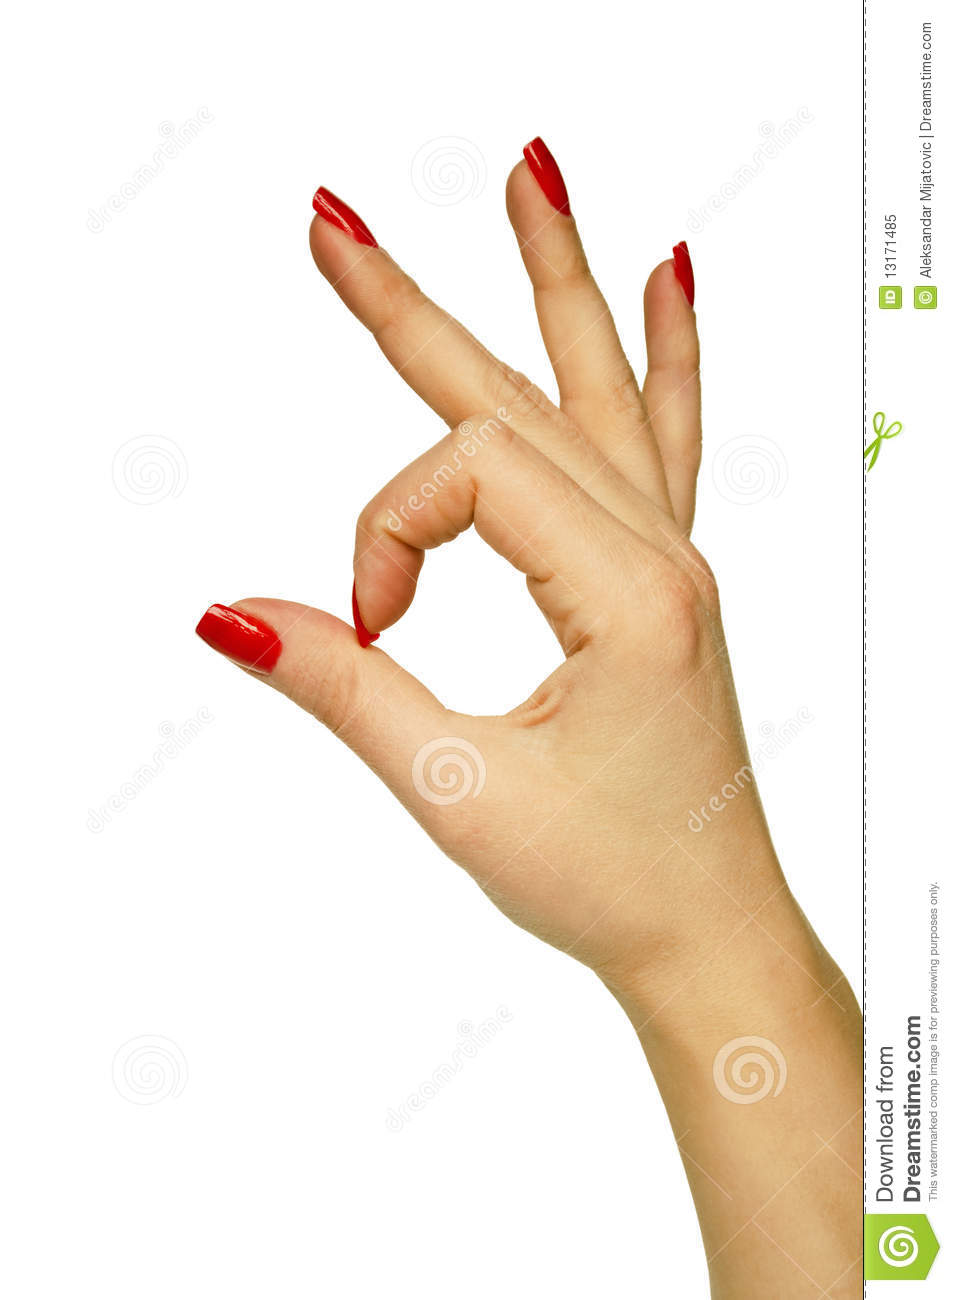 Female Hand Showing OK Sign Royalty Free Stock Photo - Image: 13171485